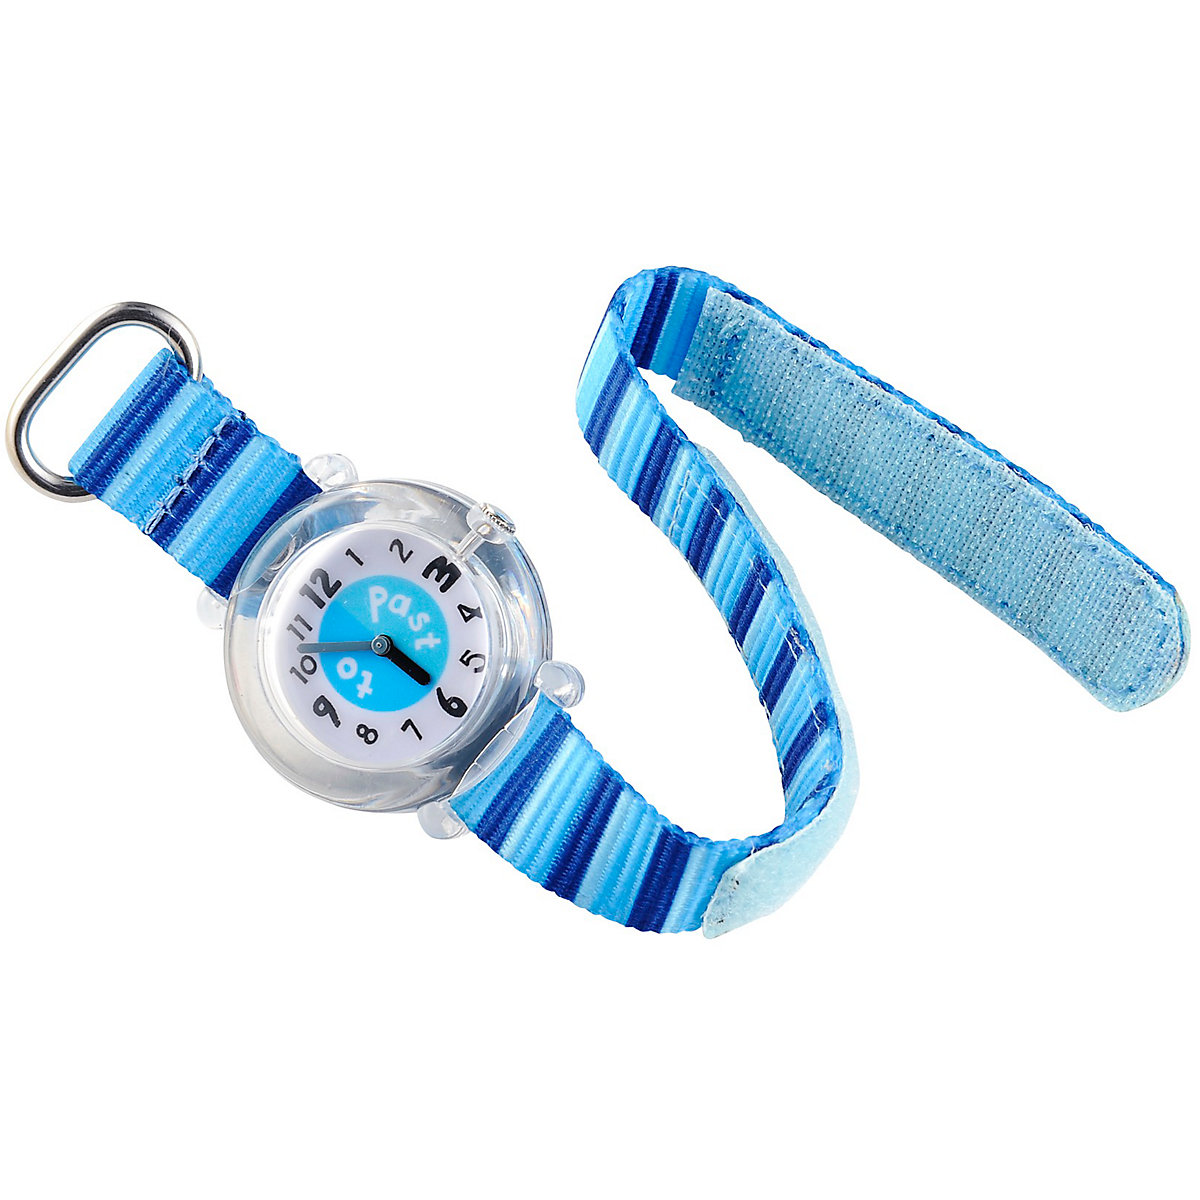 New ELC Boy Teaching Watch- Blue Toy From 5 years